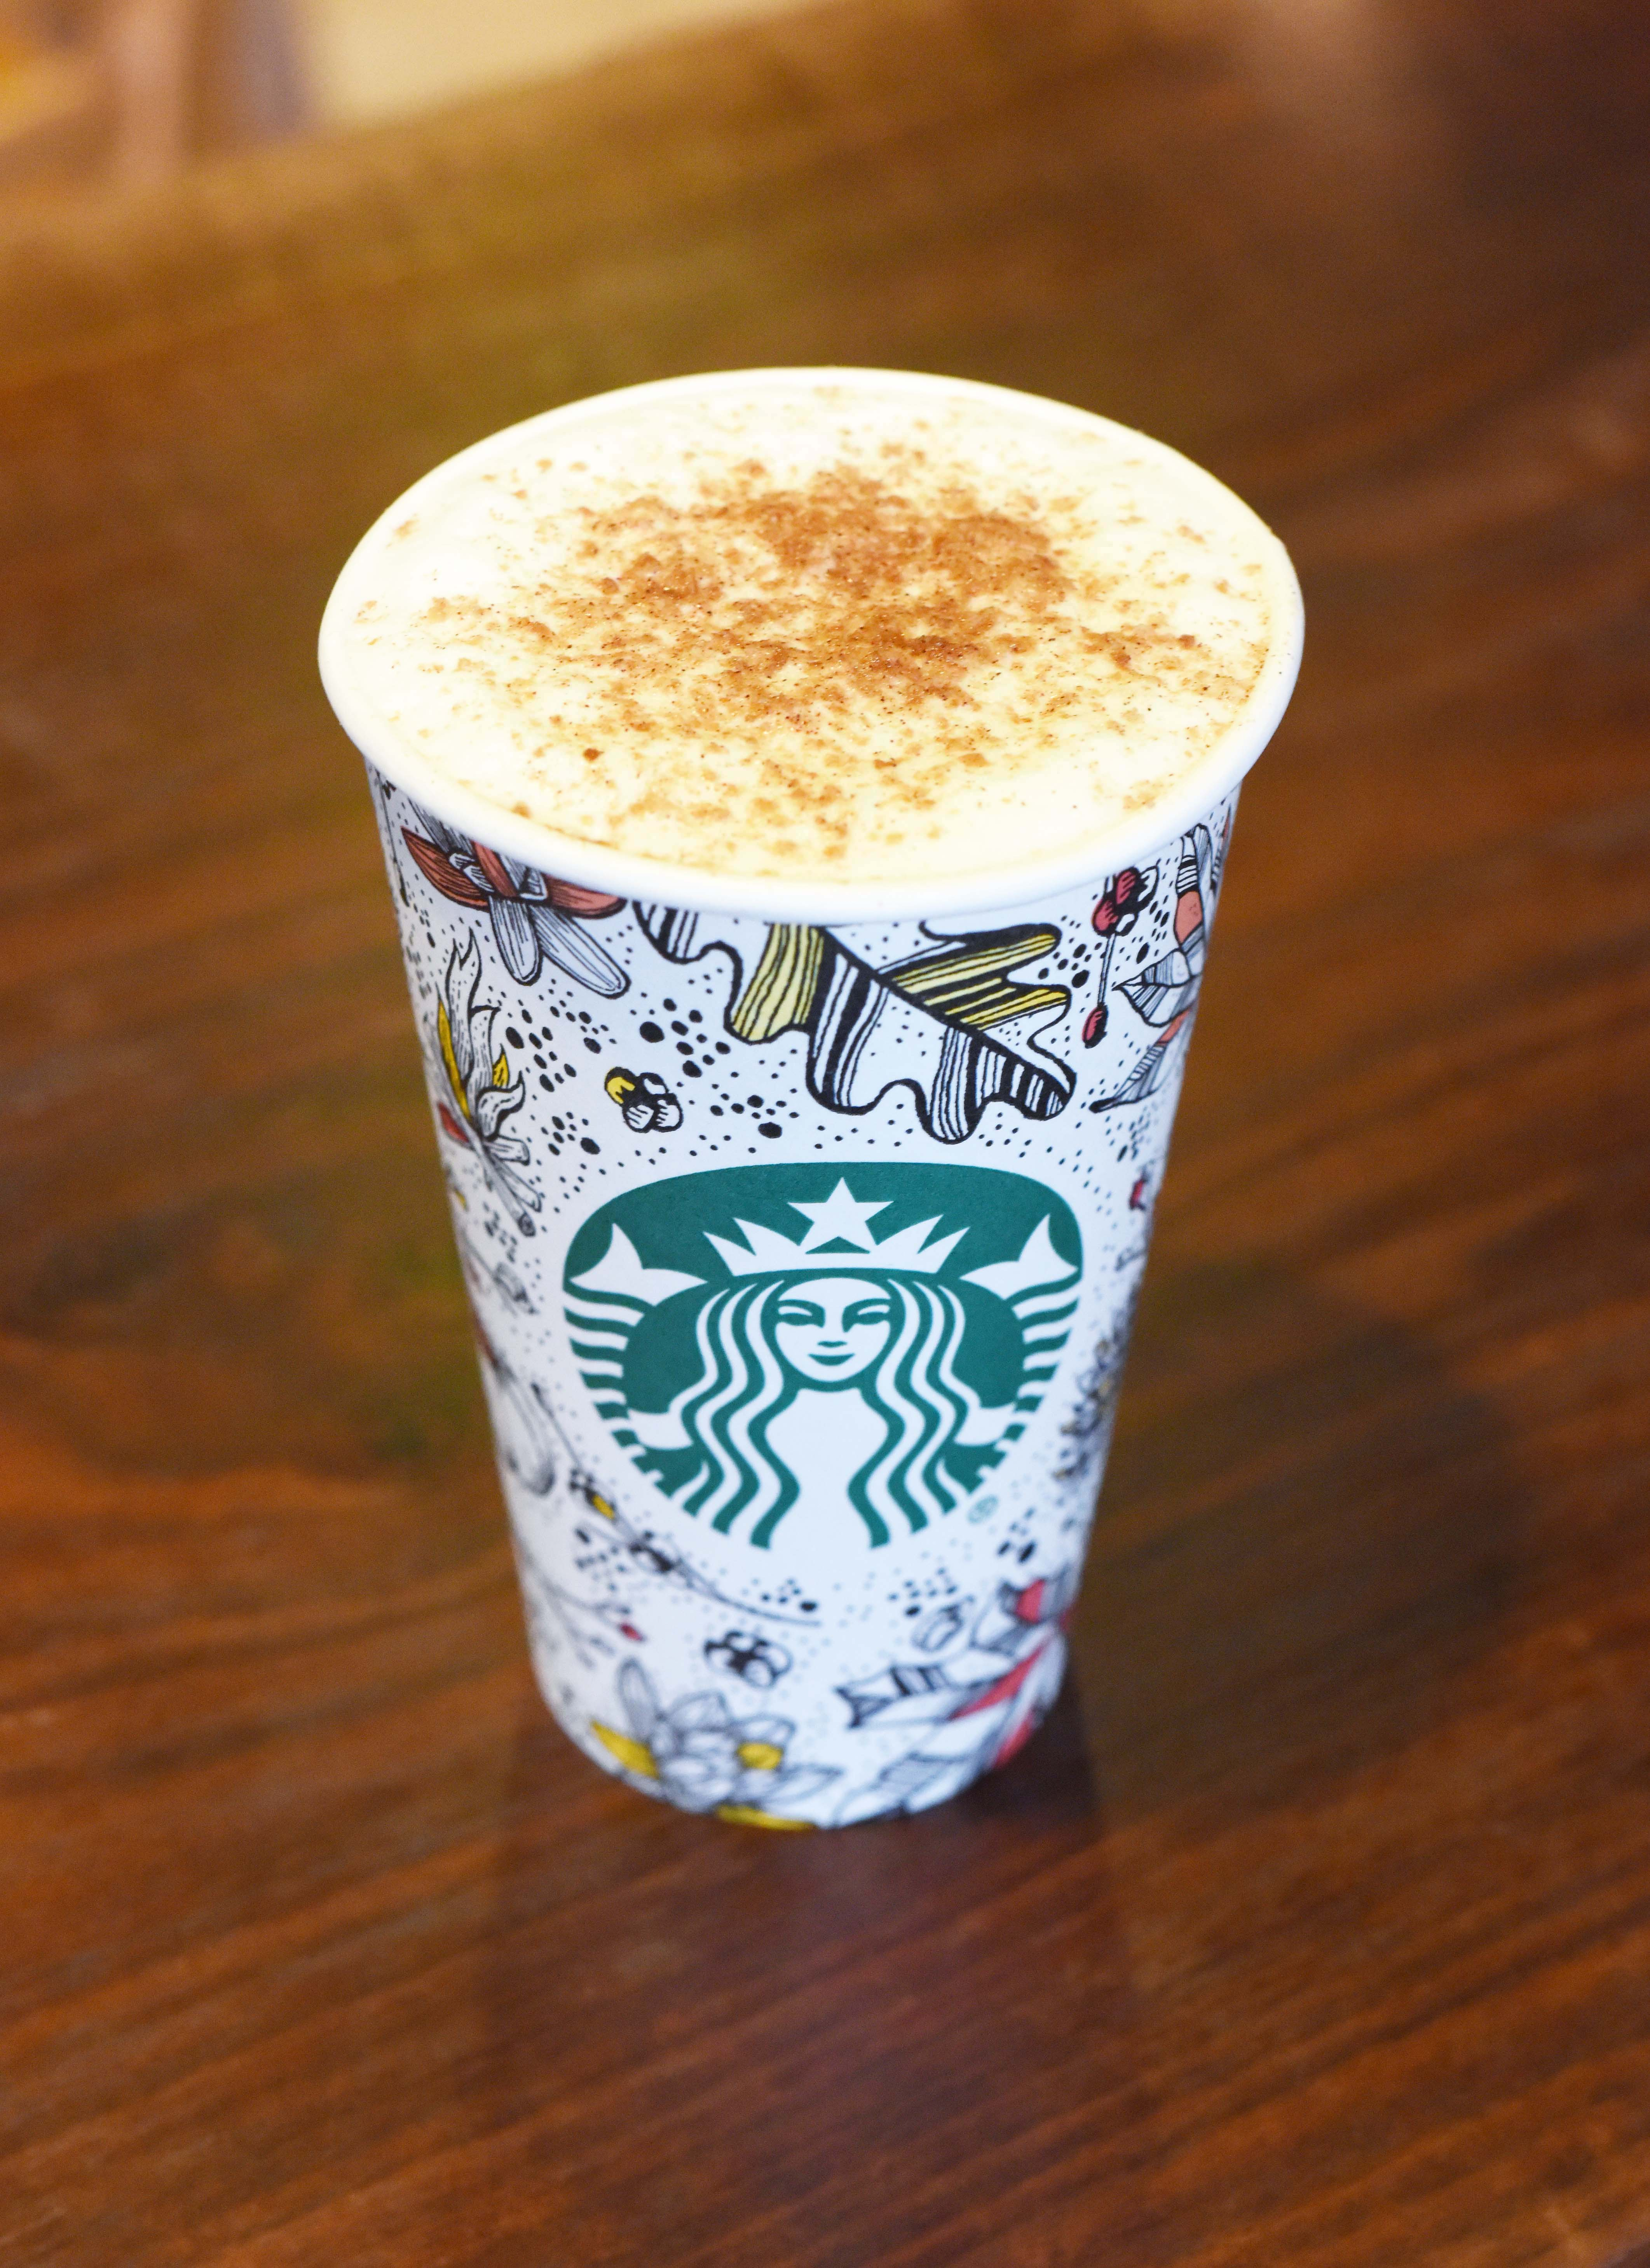 Starbucks new fall cups have hit stores.